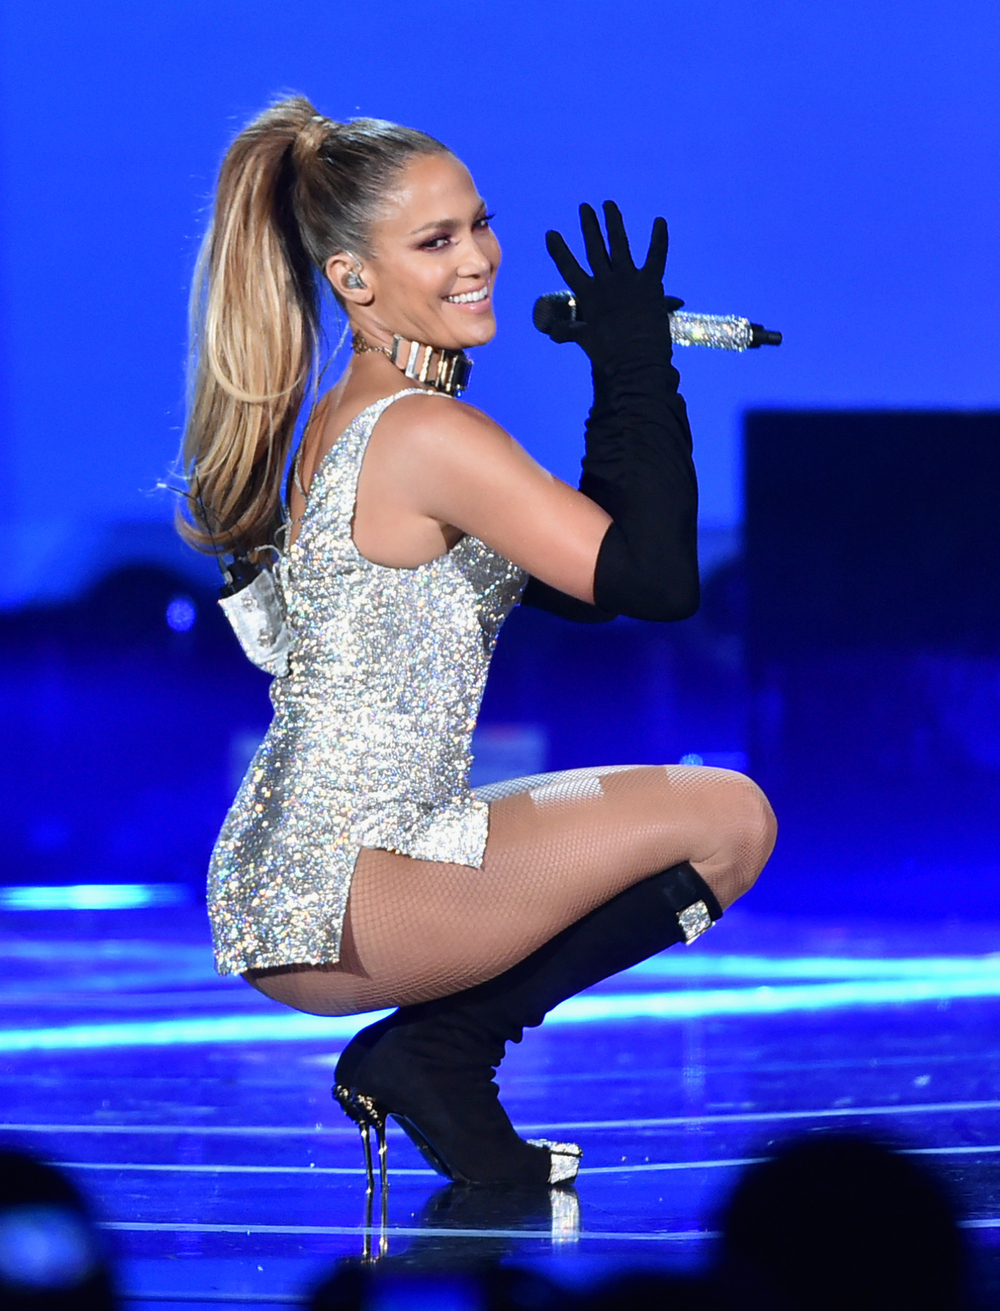 Jennifer Lopez with Thong Pic 16 of 35